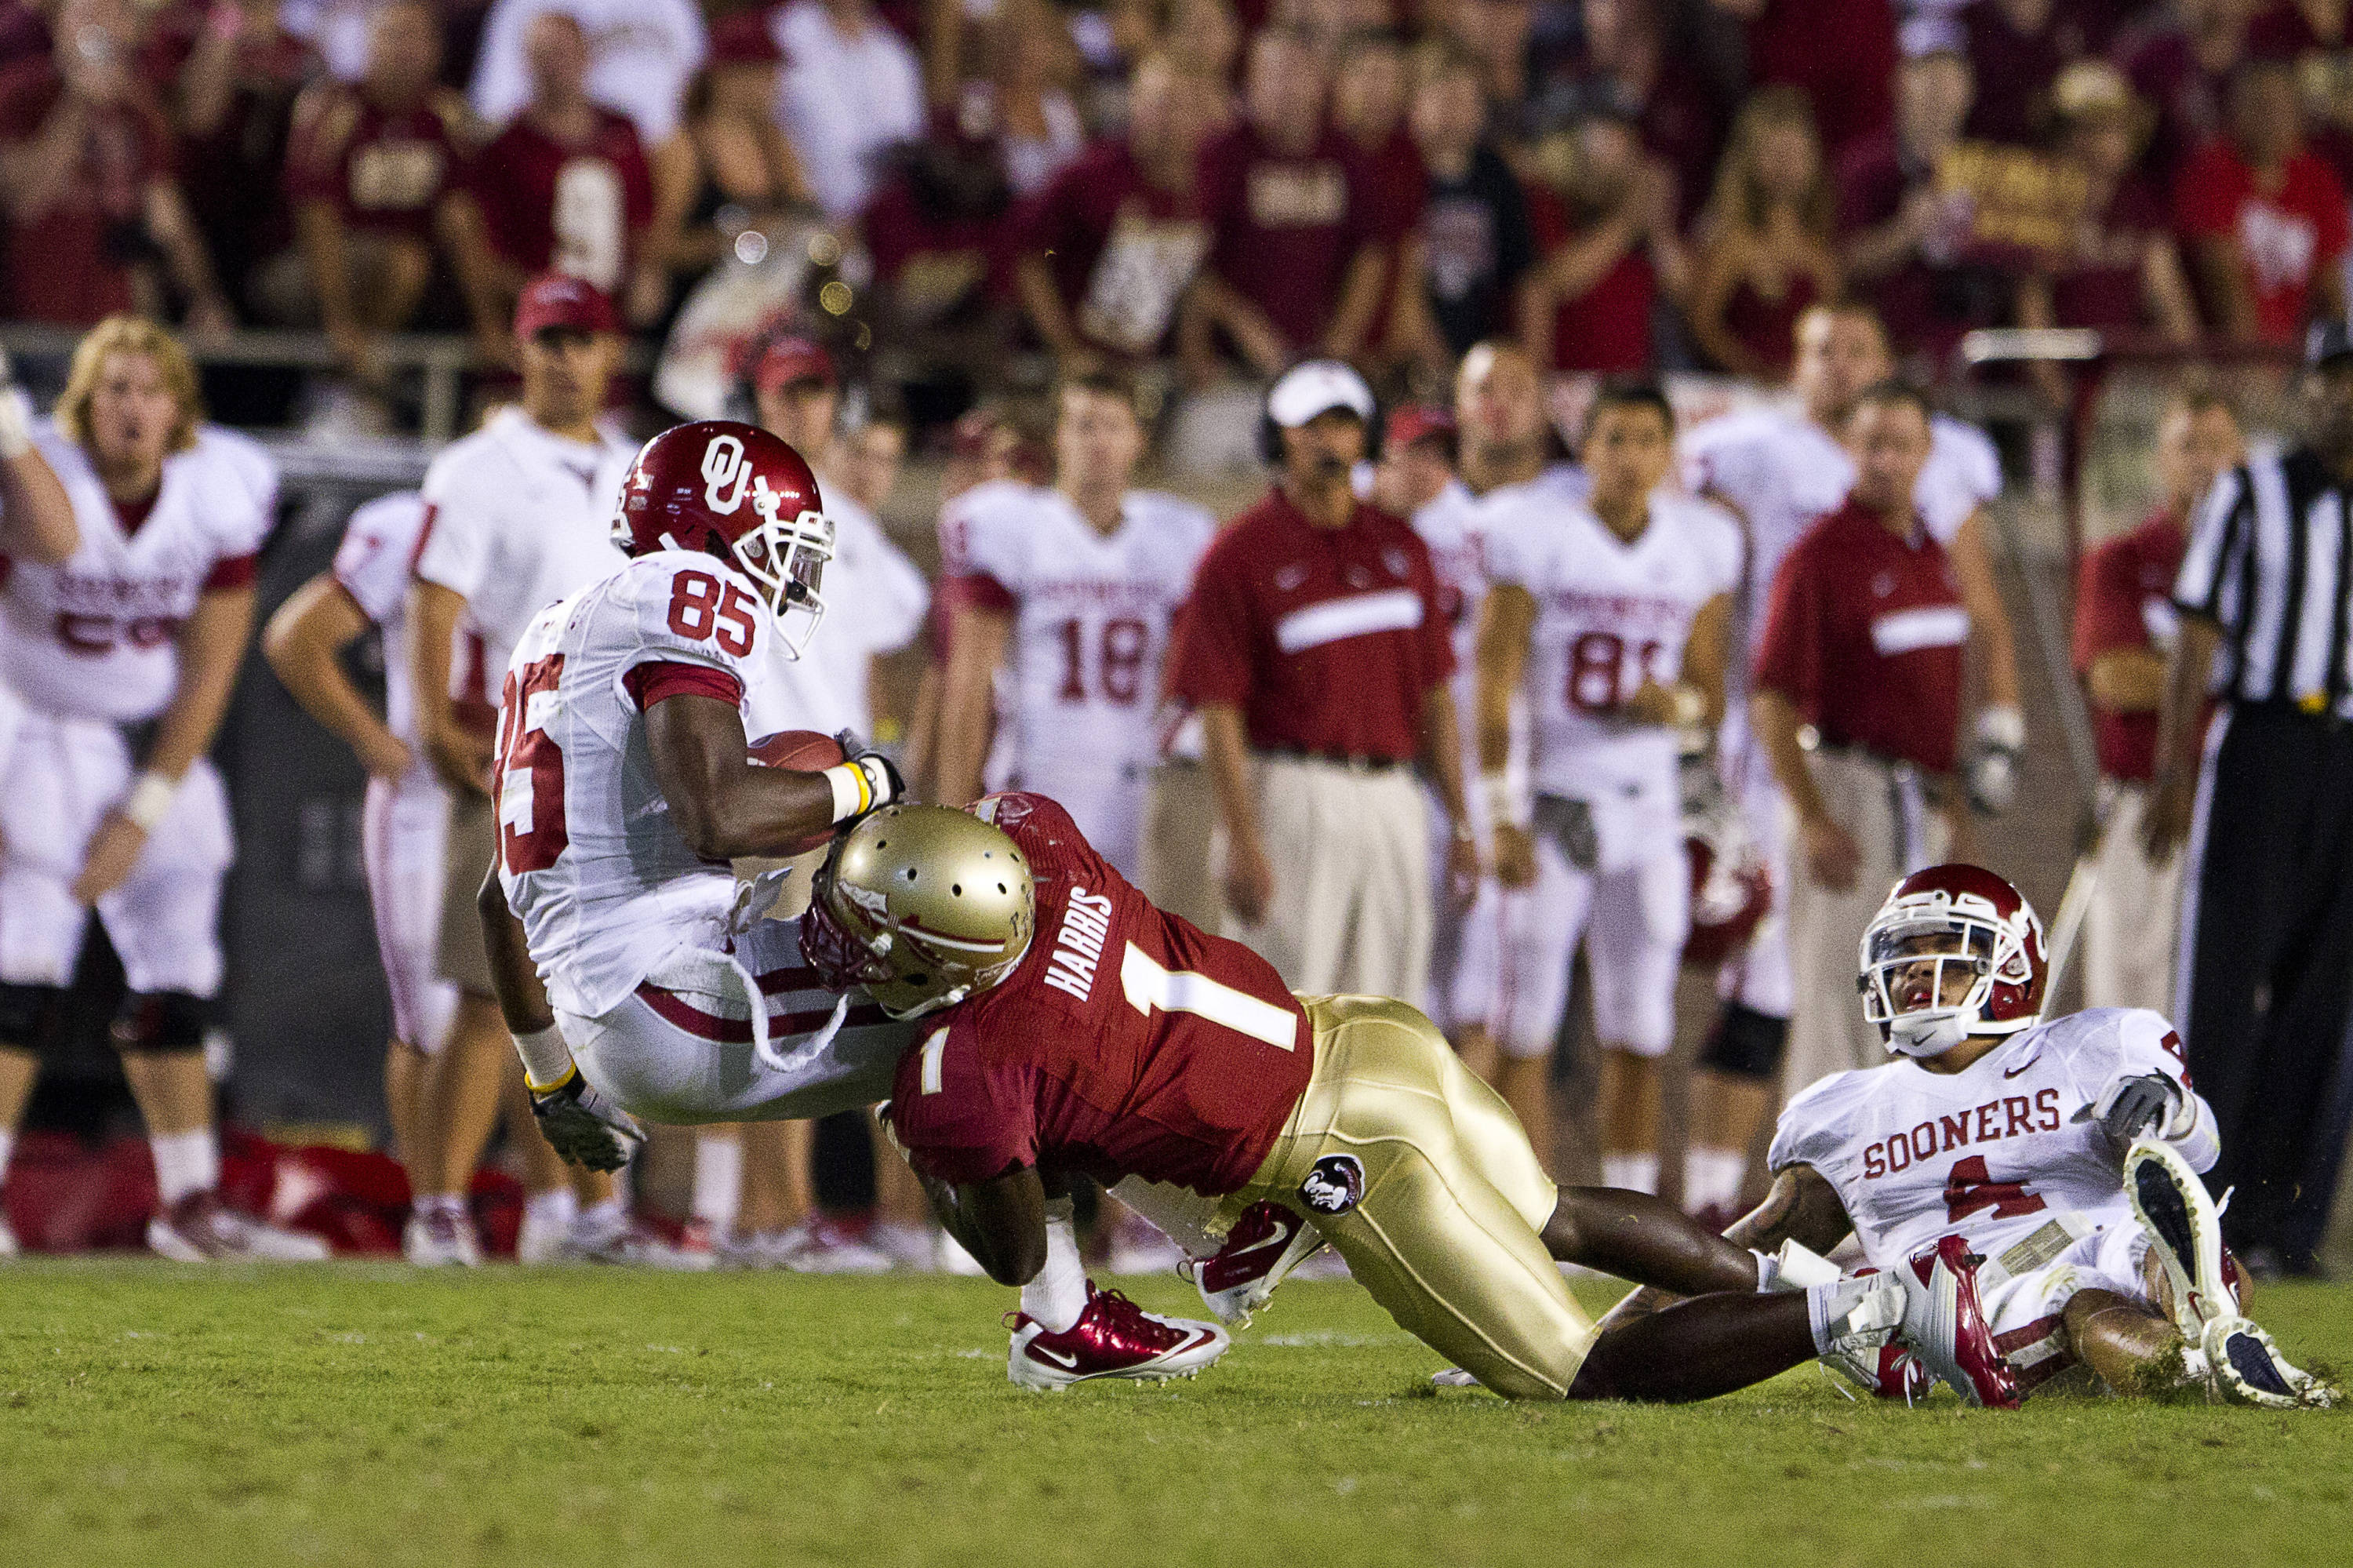 Mike Harris (1) makes an excellent tackle on Oklahoma's Ryan Broyles on September 17th